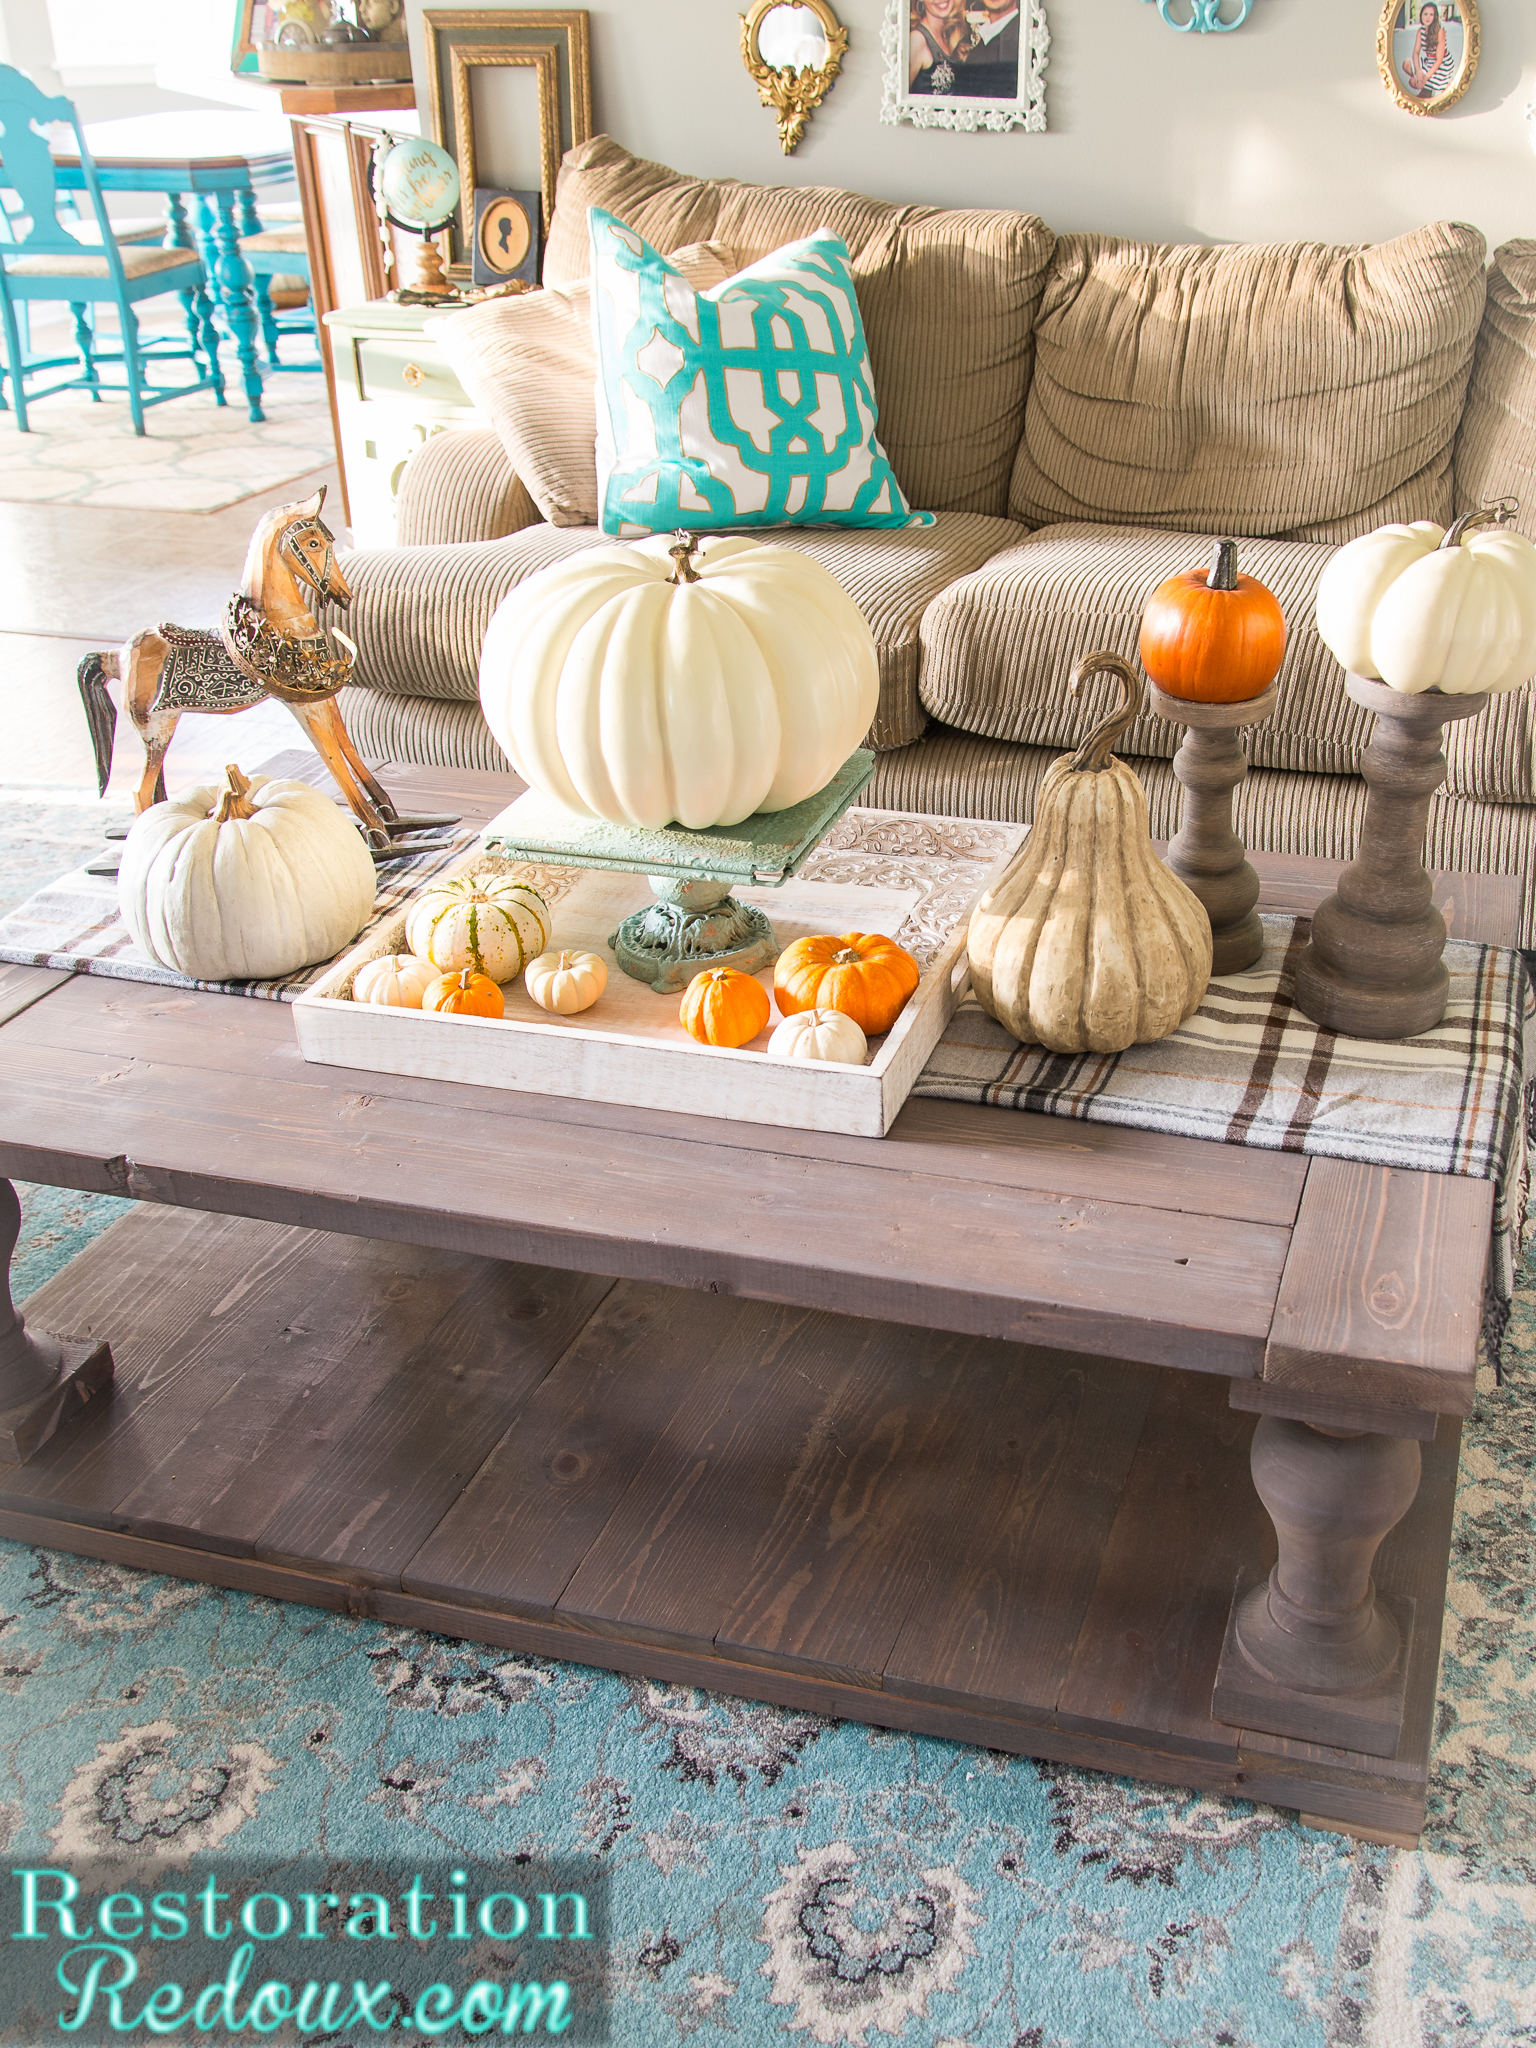 pier1-white-rustic-tray